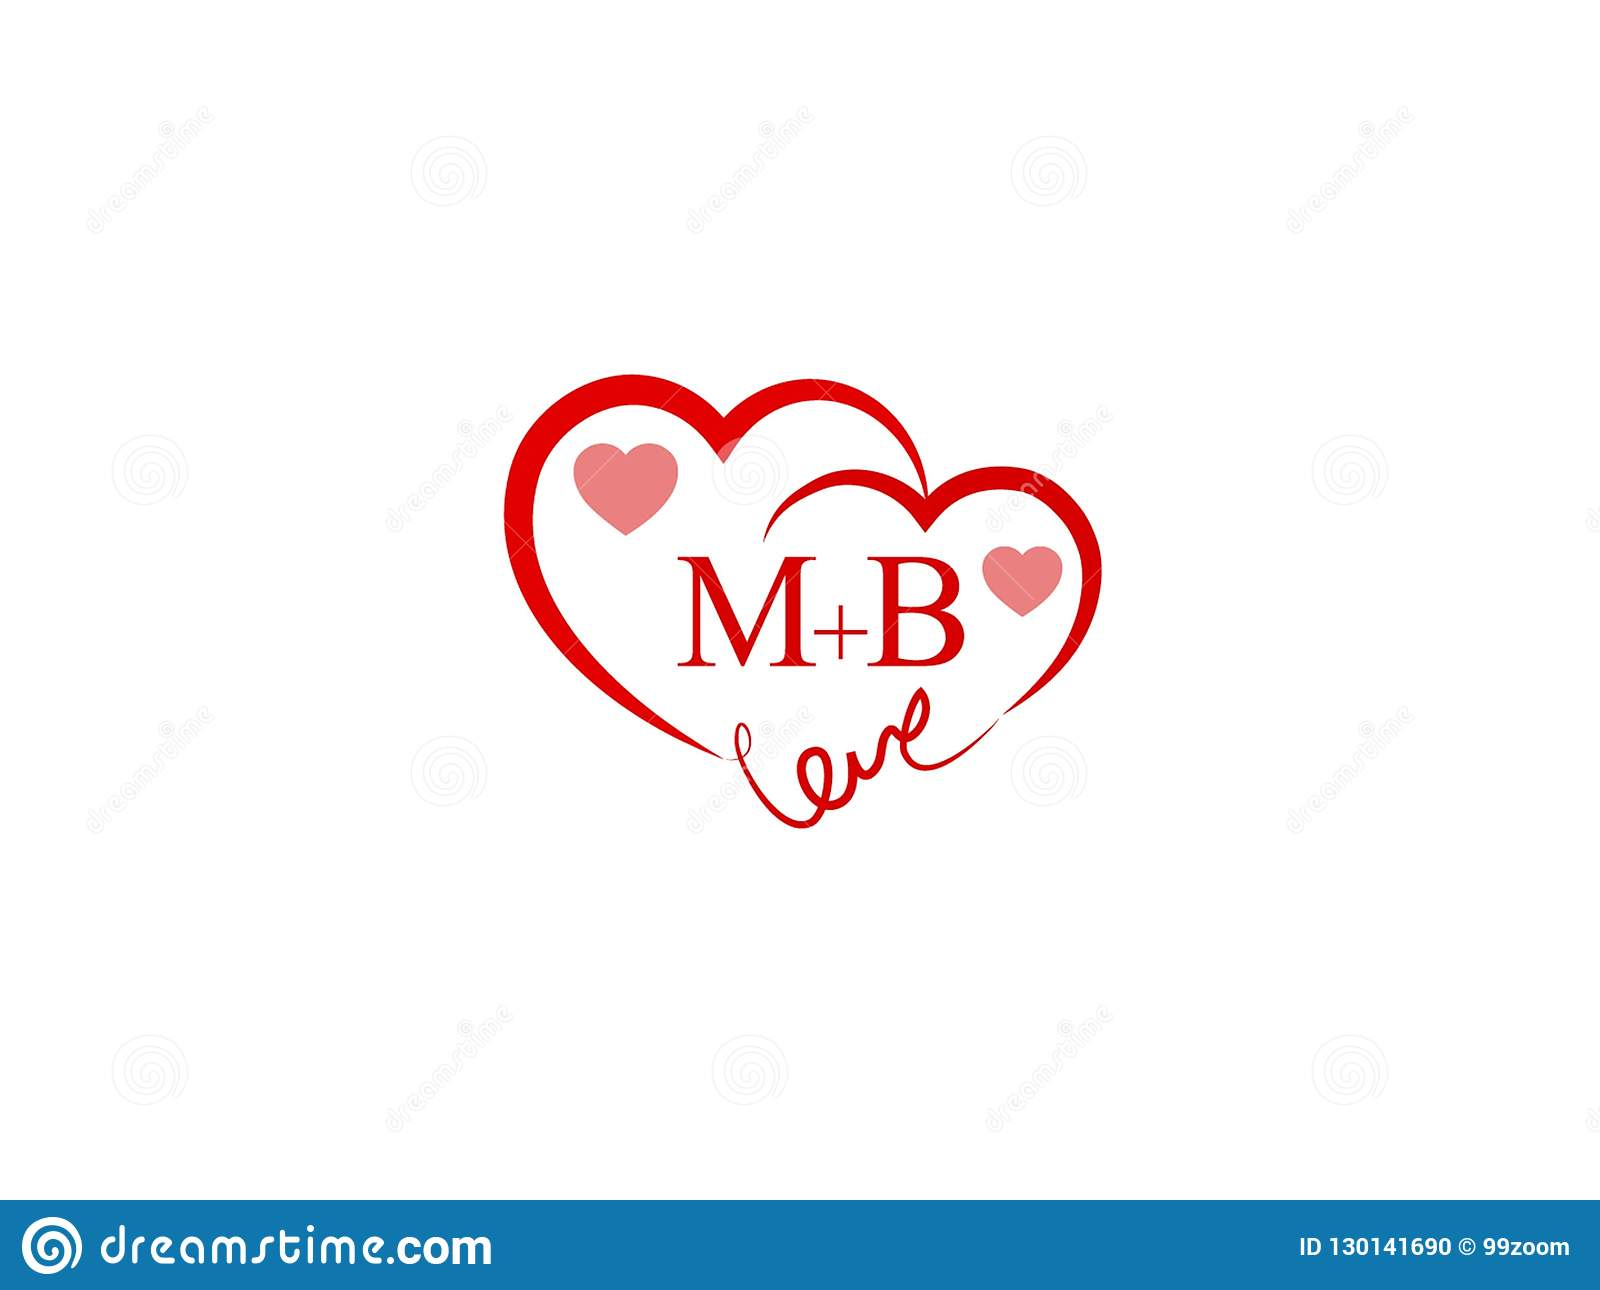 Mb Initial Heart Shape Red Colored Love Logo Stock Vector